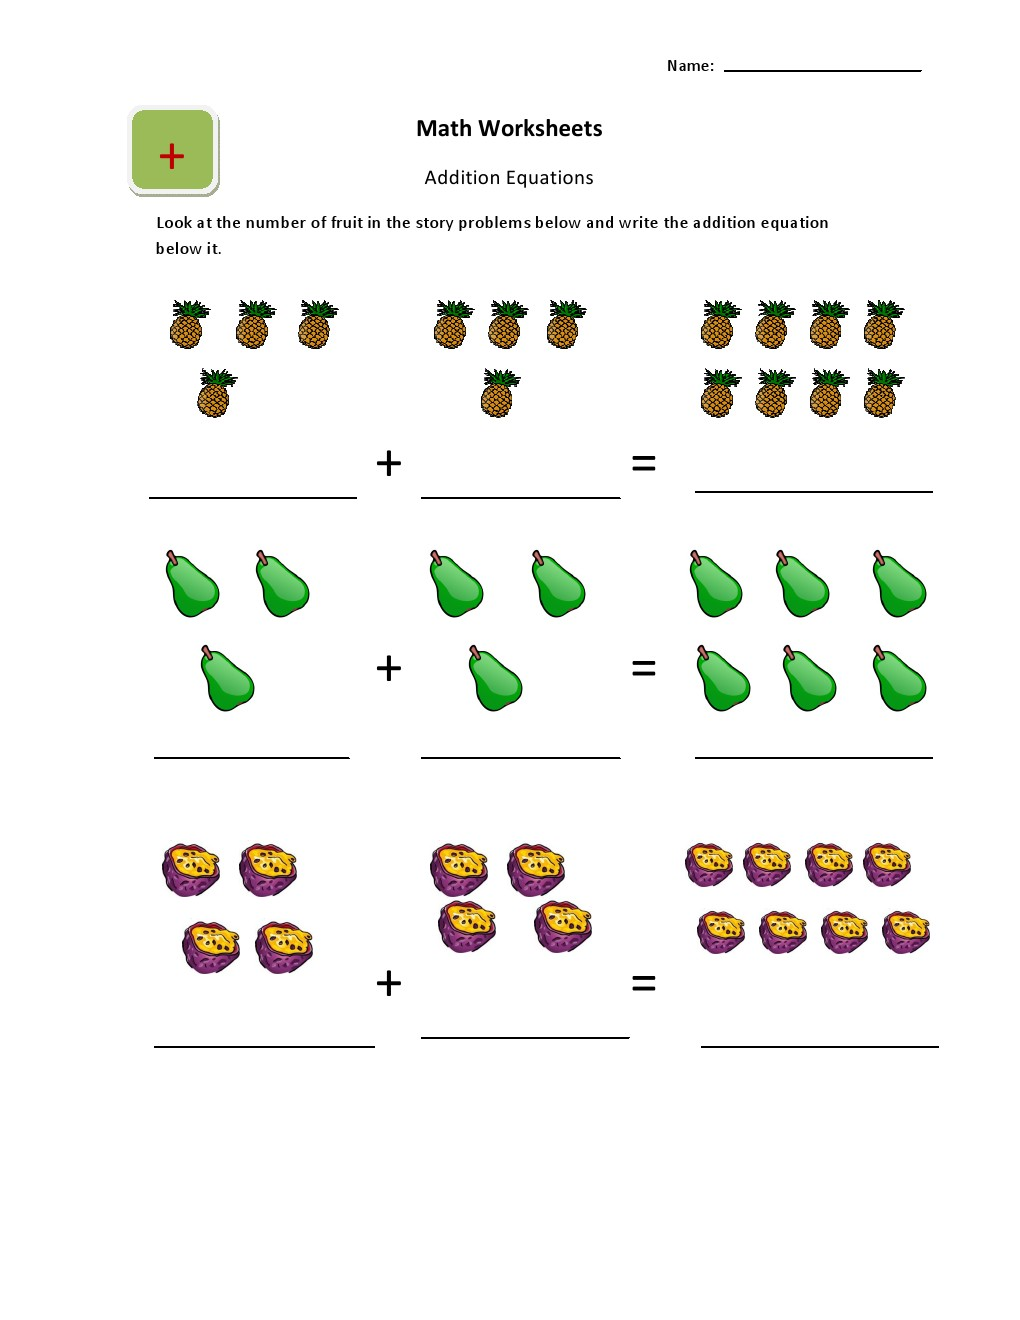 math worksheet : ukg simple addition worksheets for kids  : Maths Worksheets For Ukg